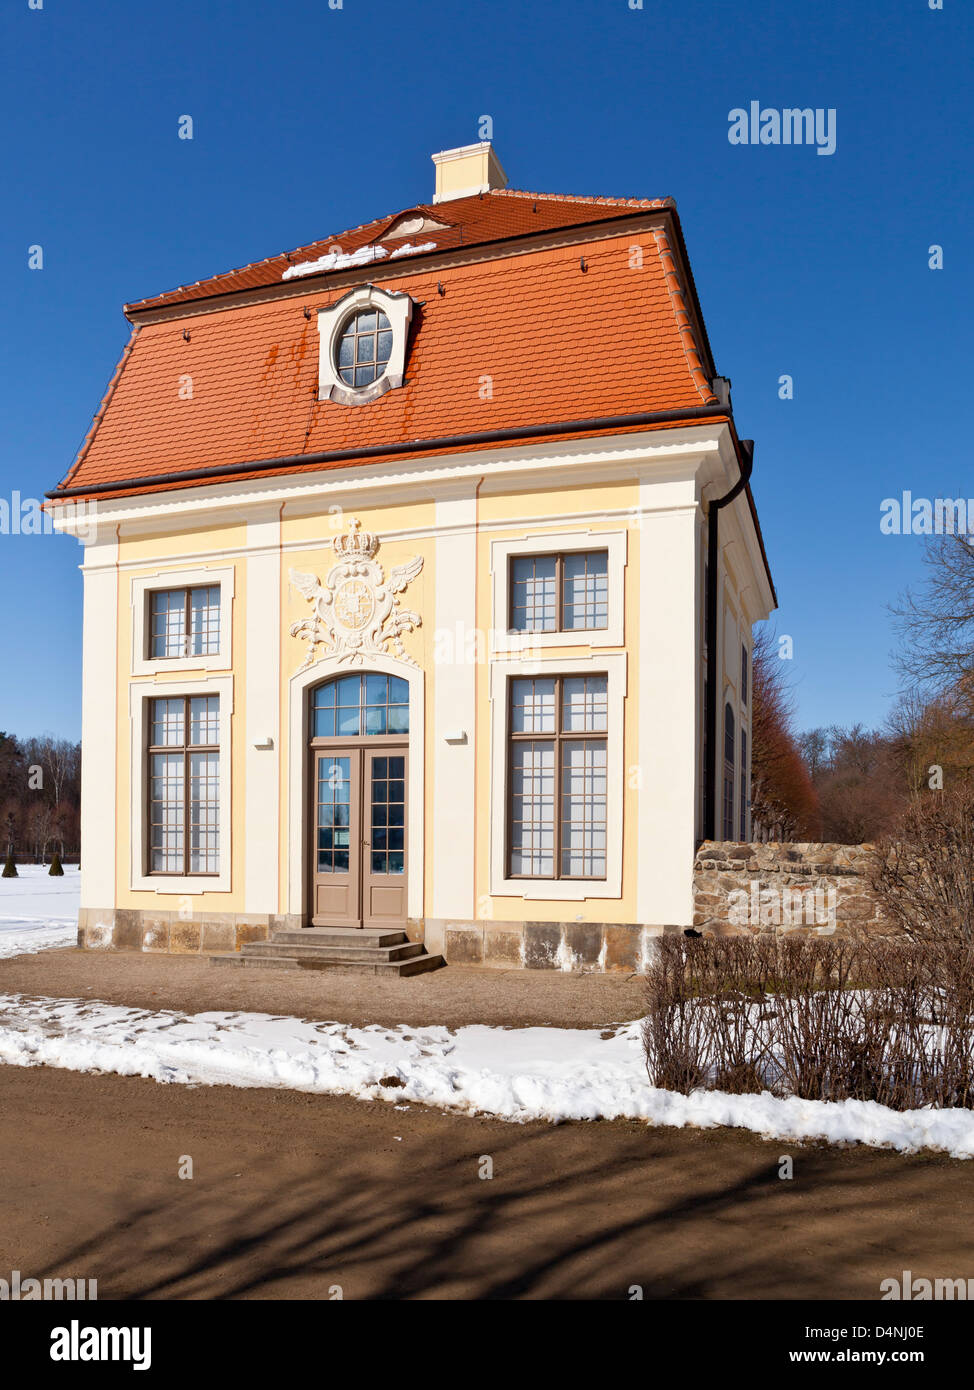 Cavalier's house (Kavaliershaus) at the Moritzburg castle in winter - Saxonia, Germany, Europe Stock Photo